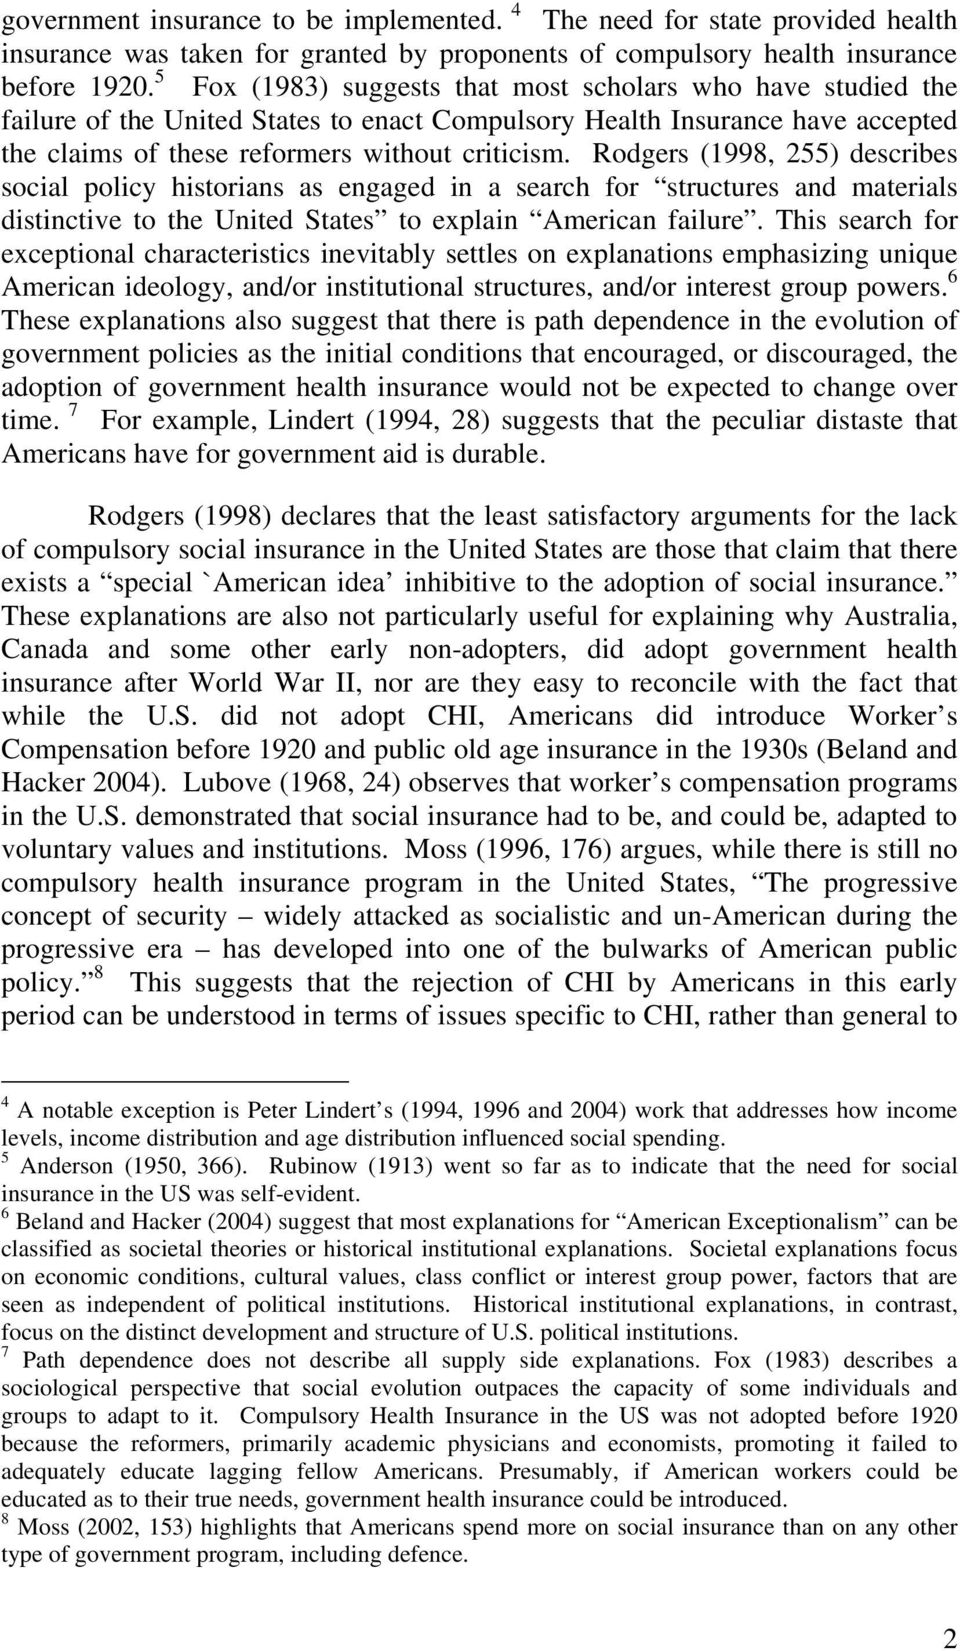 Rodgers (1998, 255) describes social policy historians as engaged in a search for structures and materials distinctive to the United States to explain American failure.